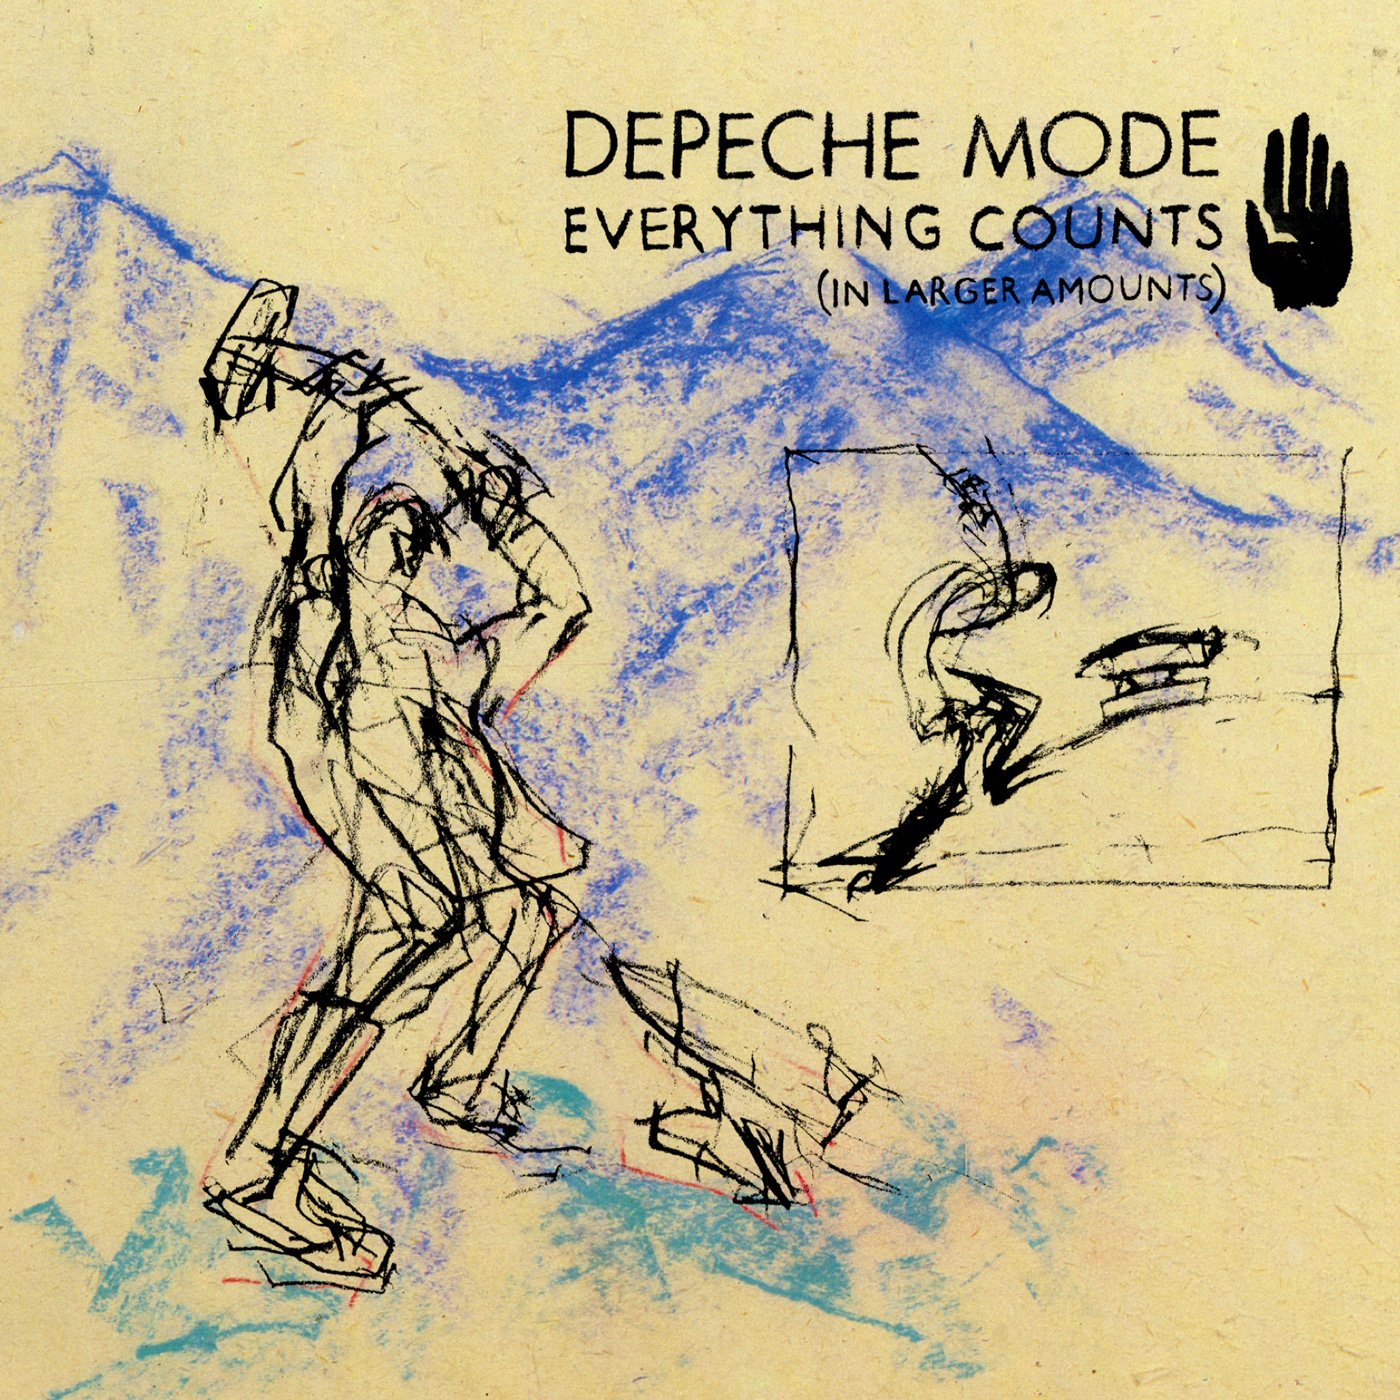 Taken in by a suntan and a grin. 'Everything Counts' released in the UK on this day in 1983. #ModeMonday https://t.co/RtQ9HuCYue